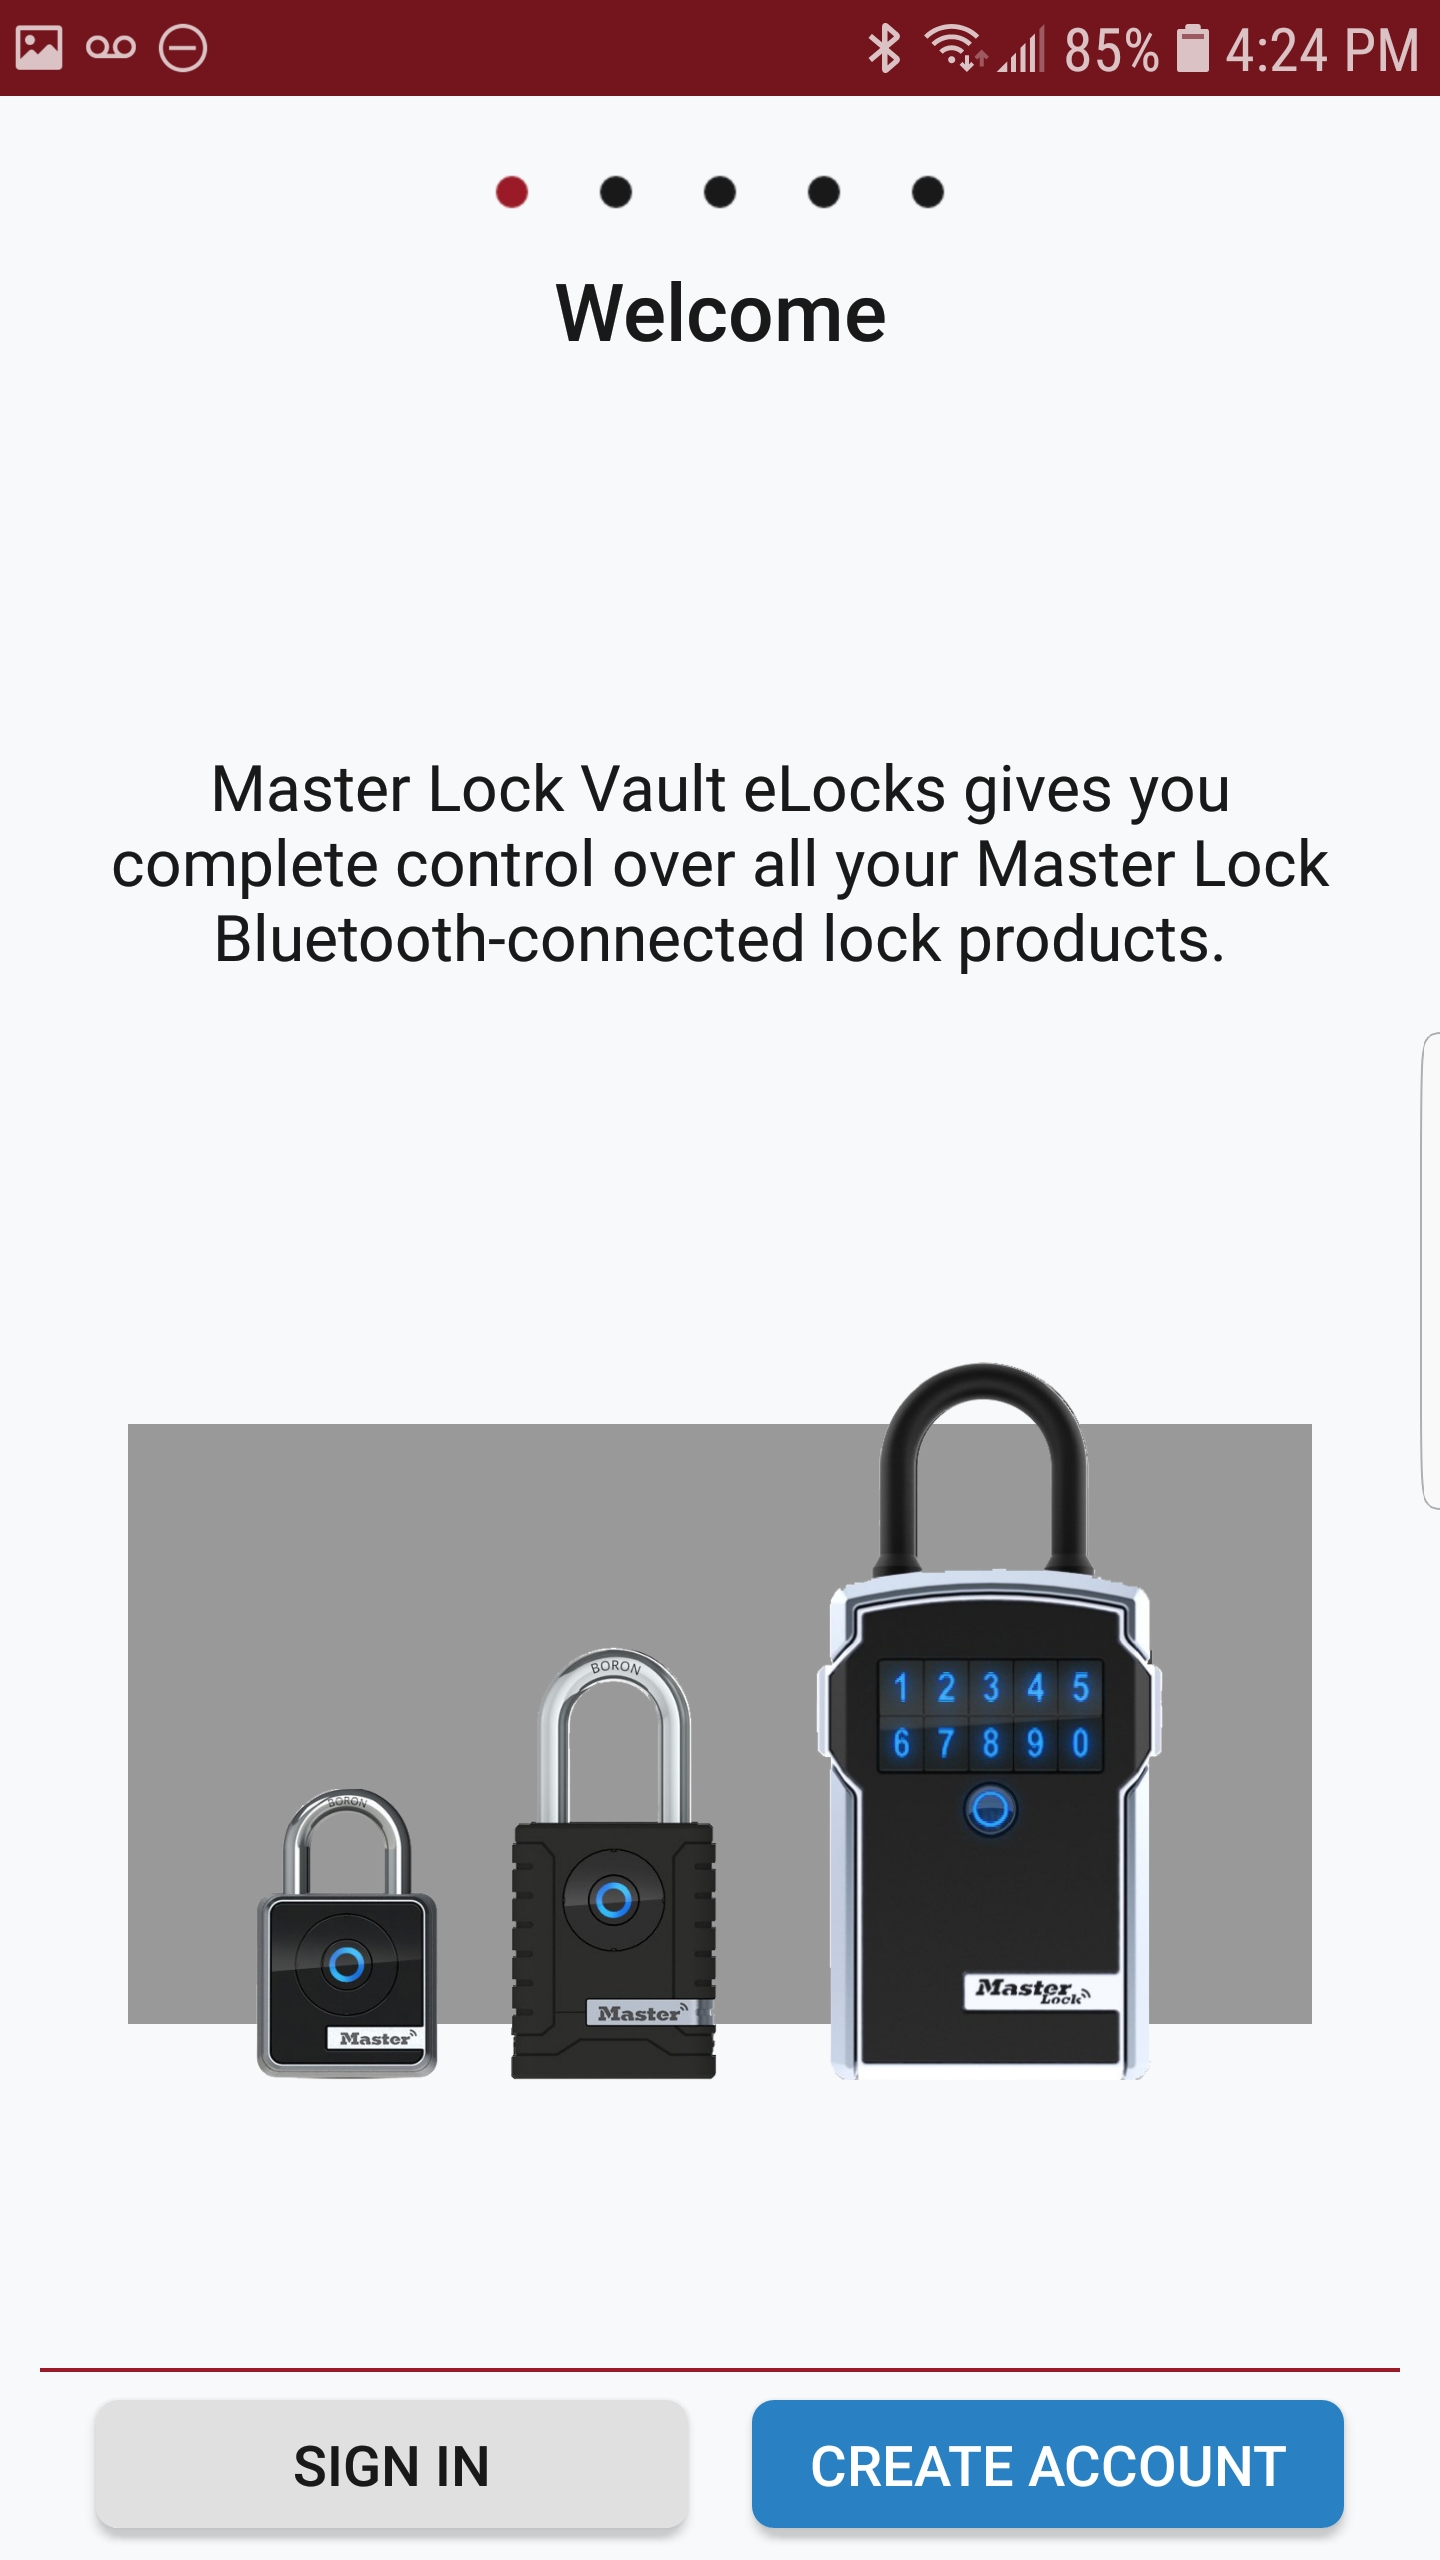 Screenshot_20190215-162413_Master Lock.jpg